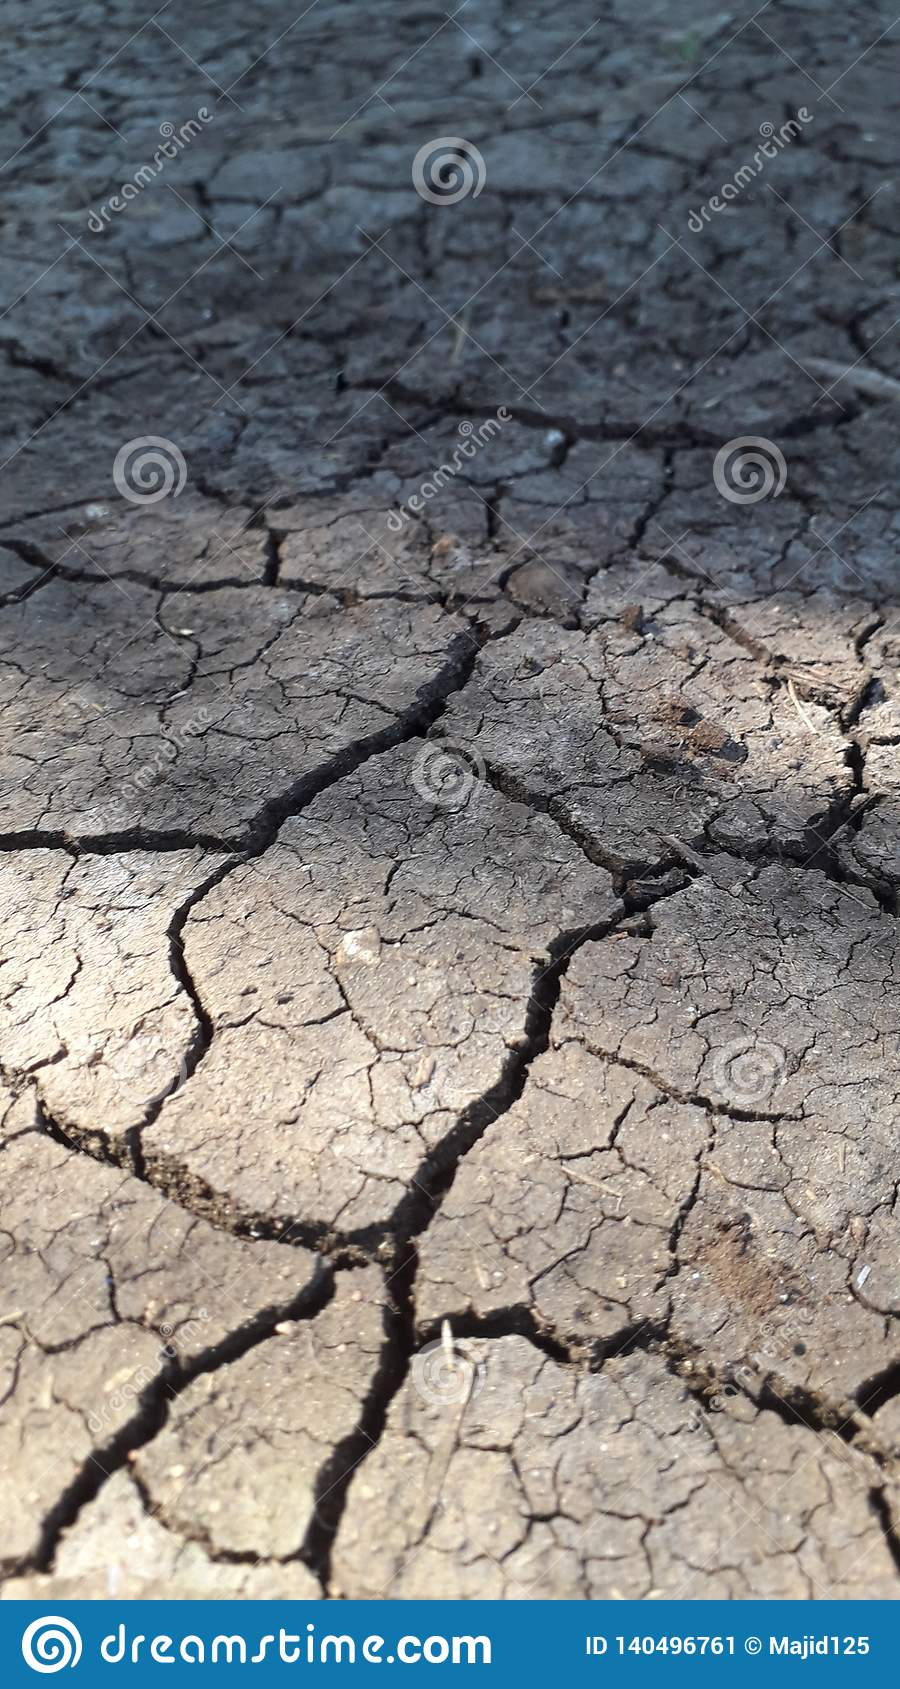 Aspect of drought on earth